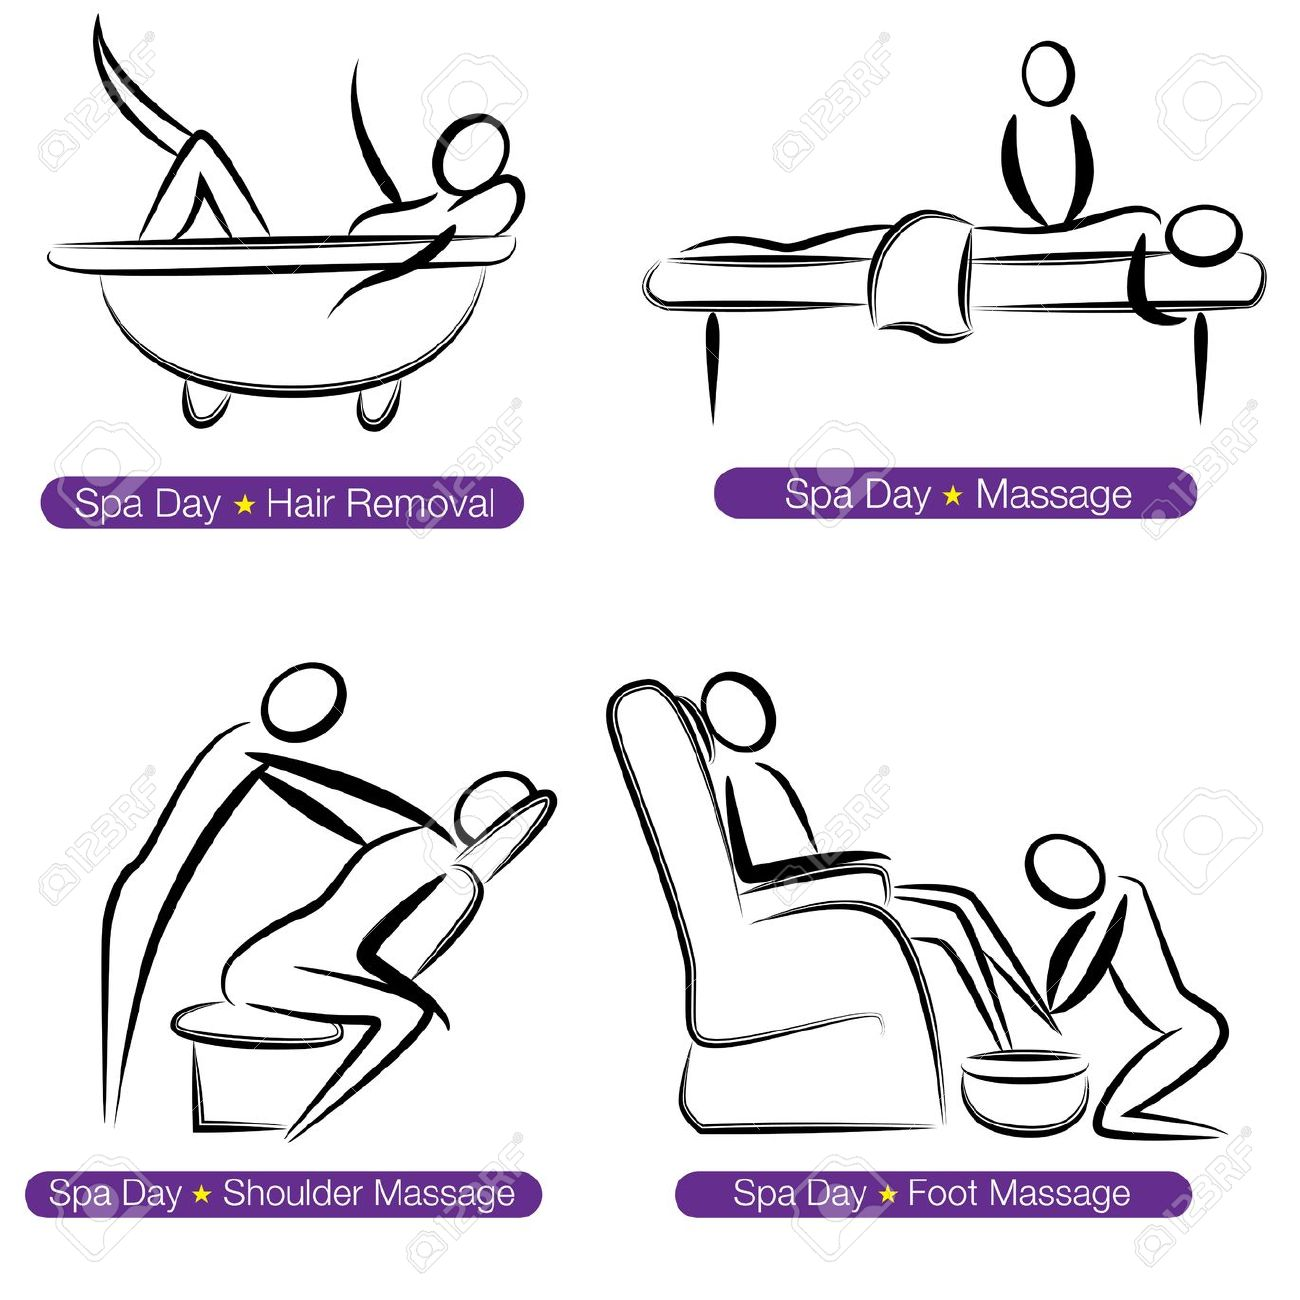 Massage Cartoon Clipart | Free download on ClipArtMag